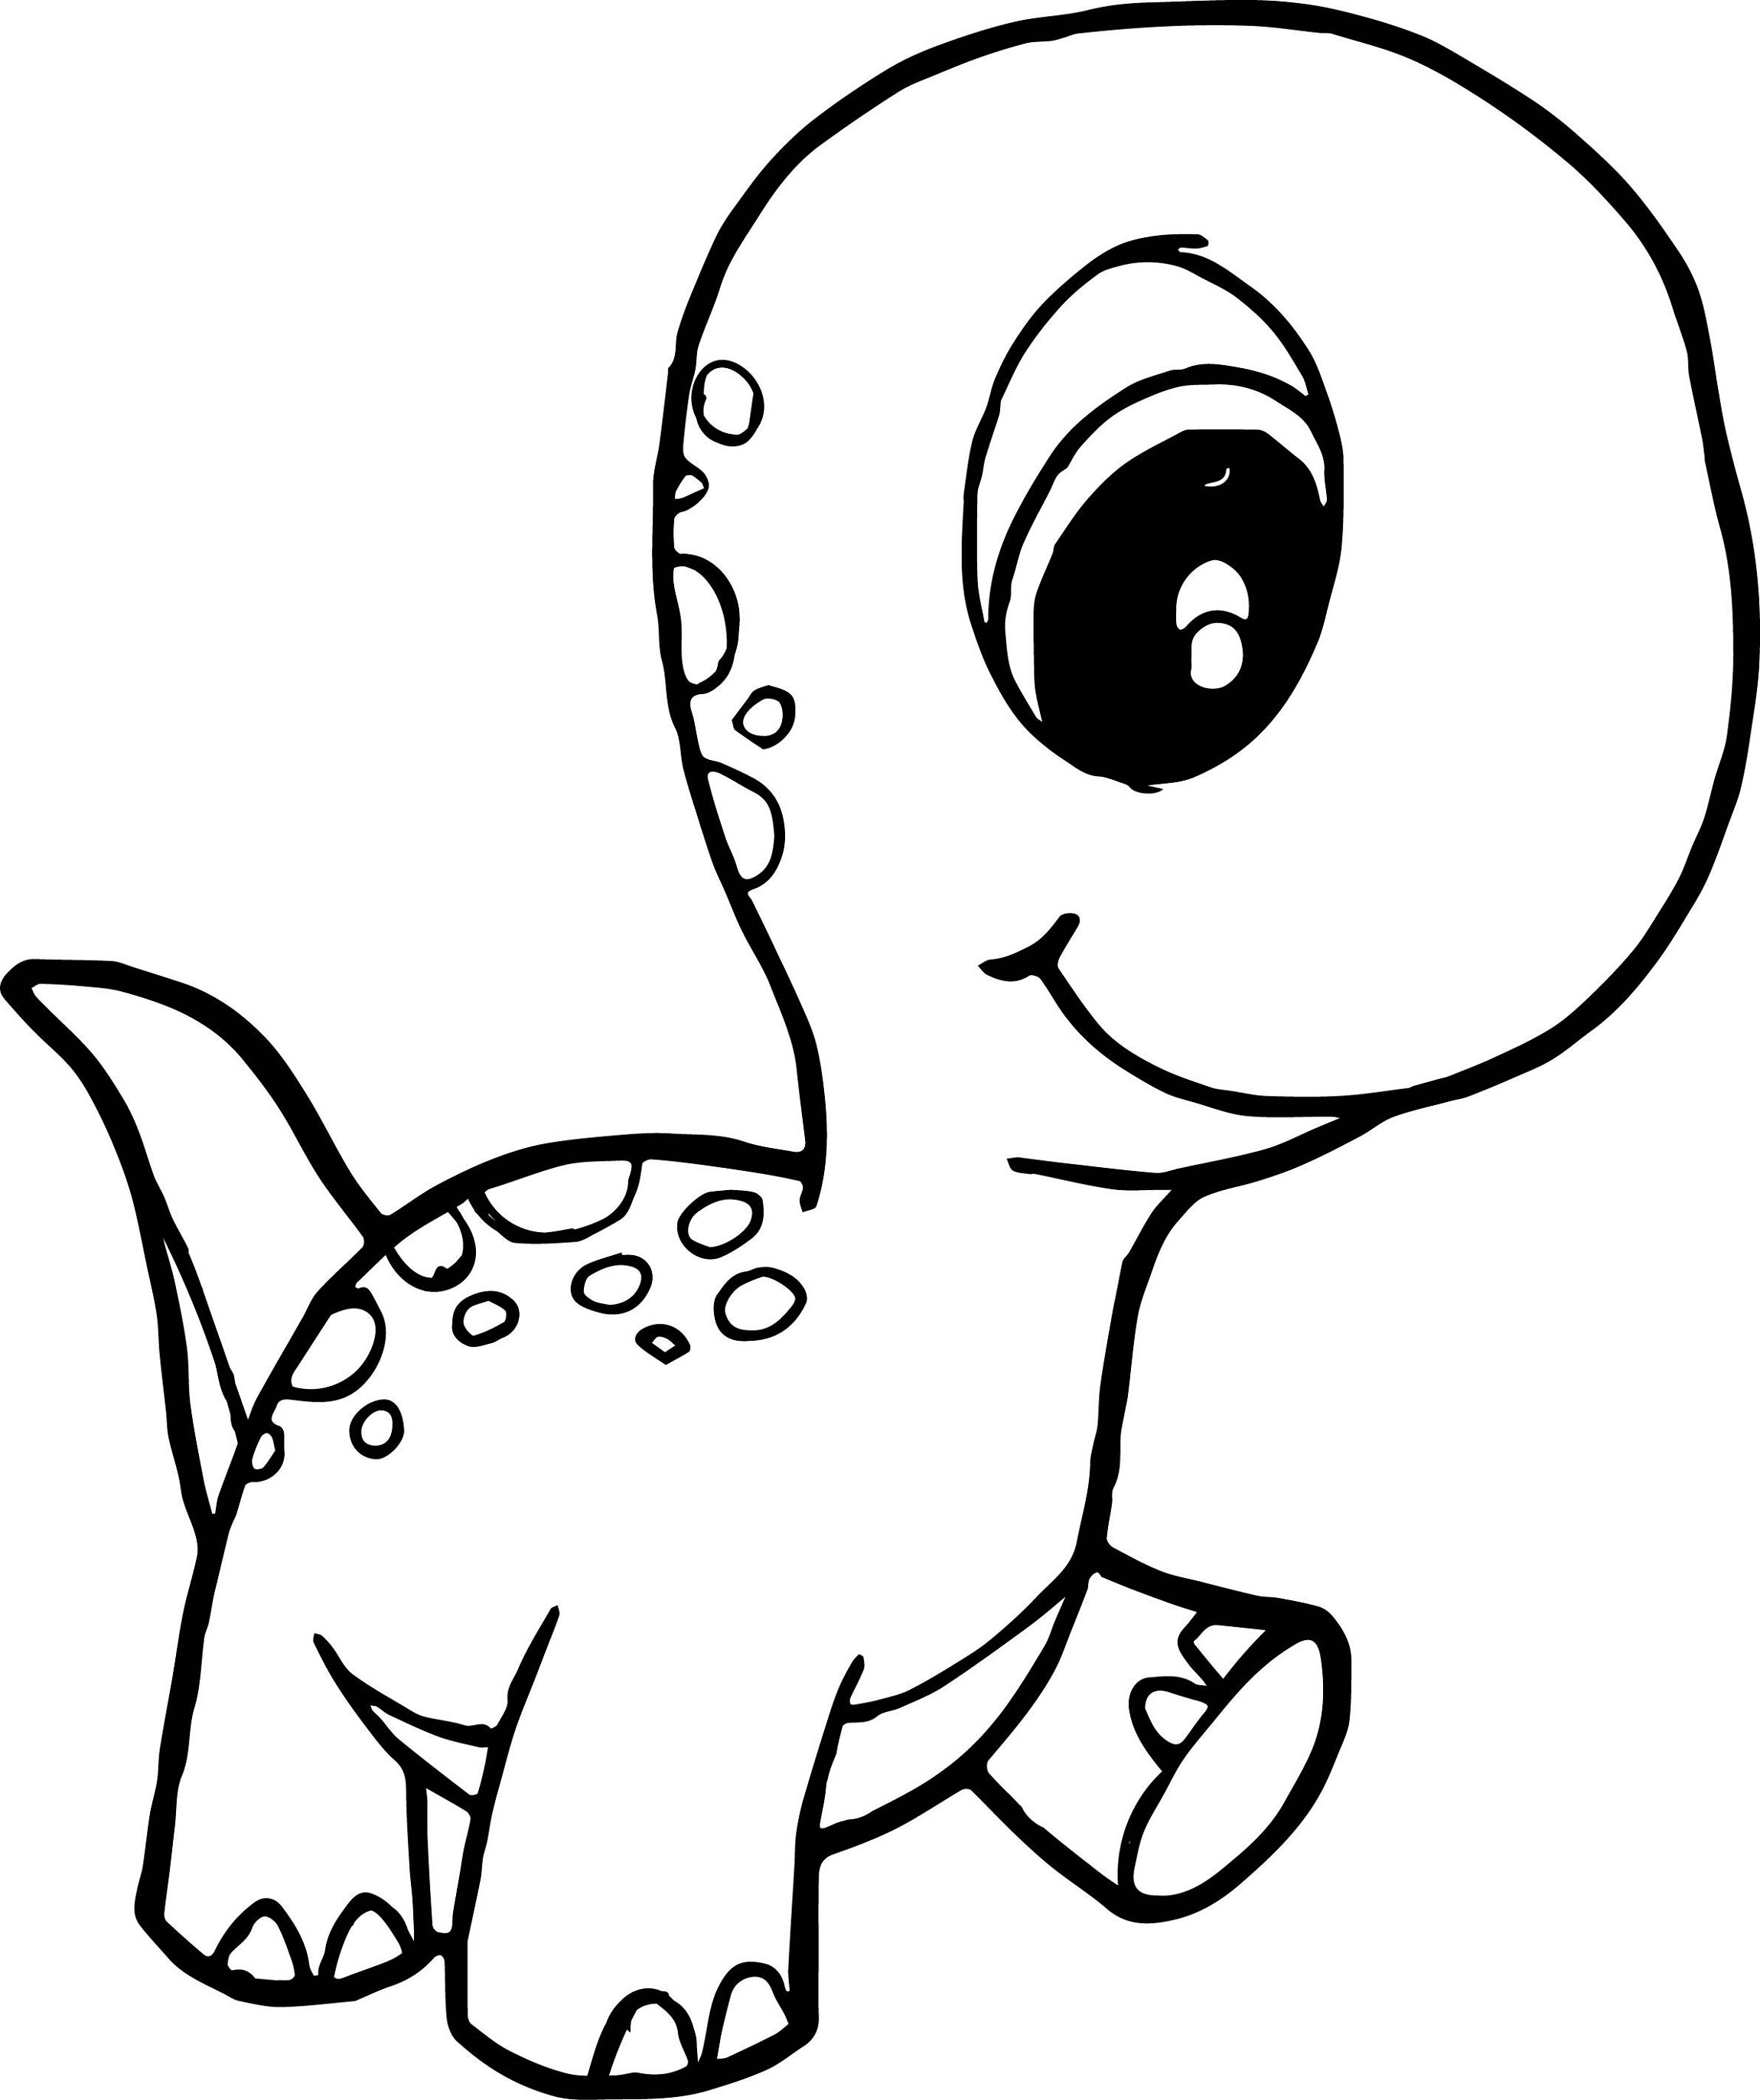 Baby Dinosaur Coloring Pages For Preschoolers Dinosaur Coloring Dinosaur Coloring Pages Cute Coloring Pages